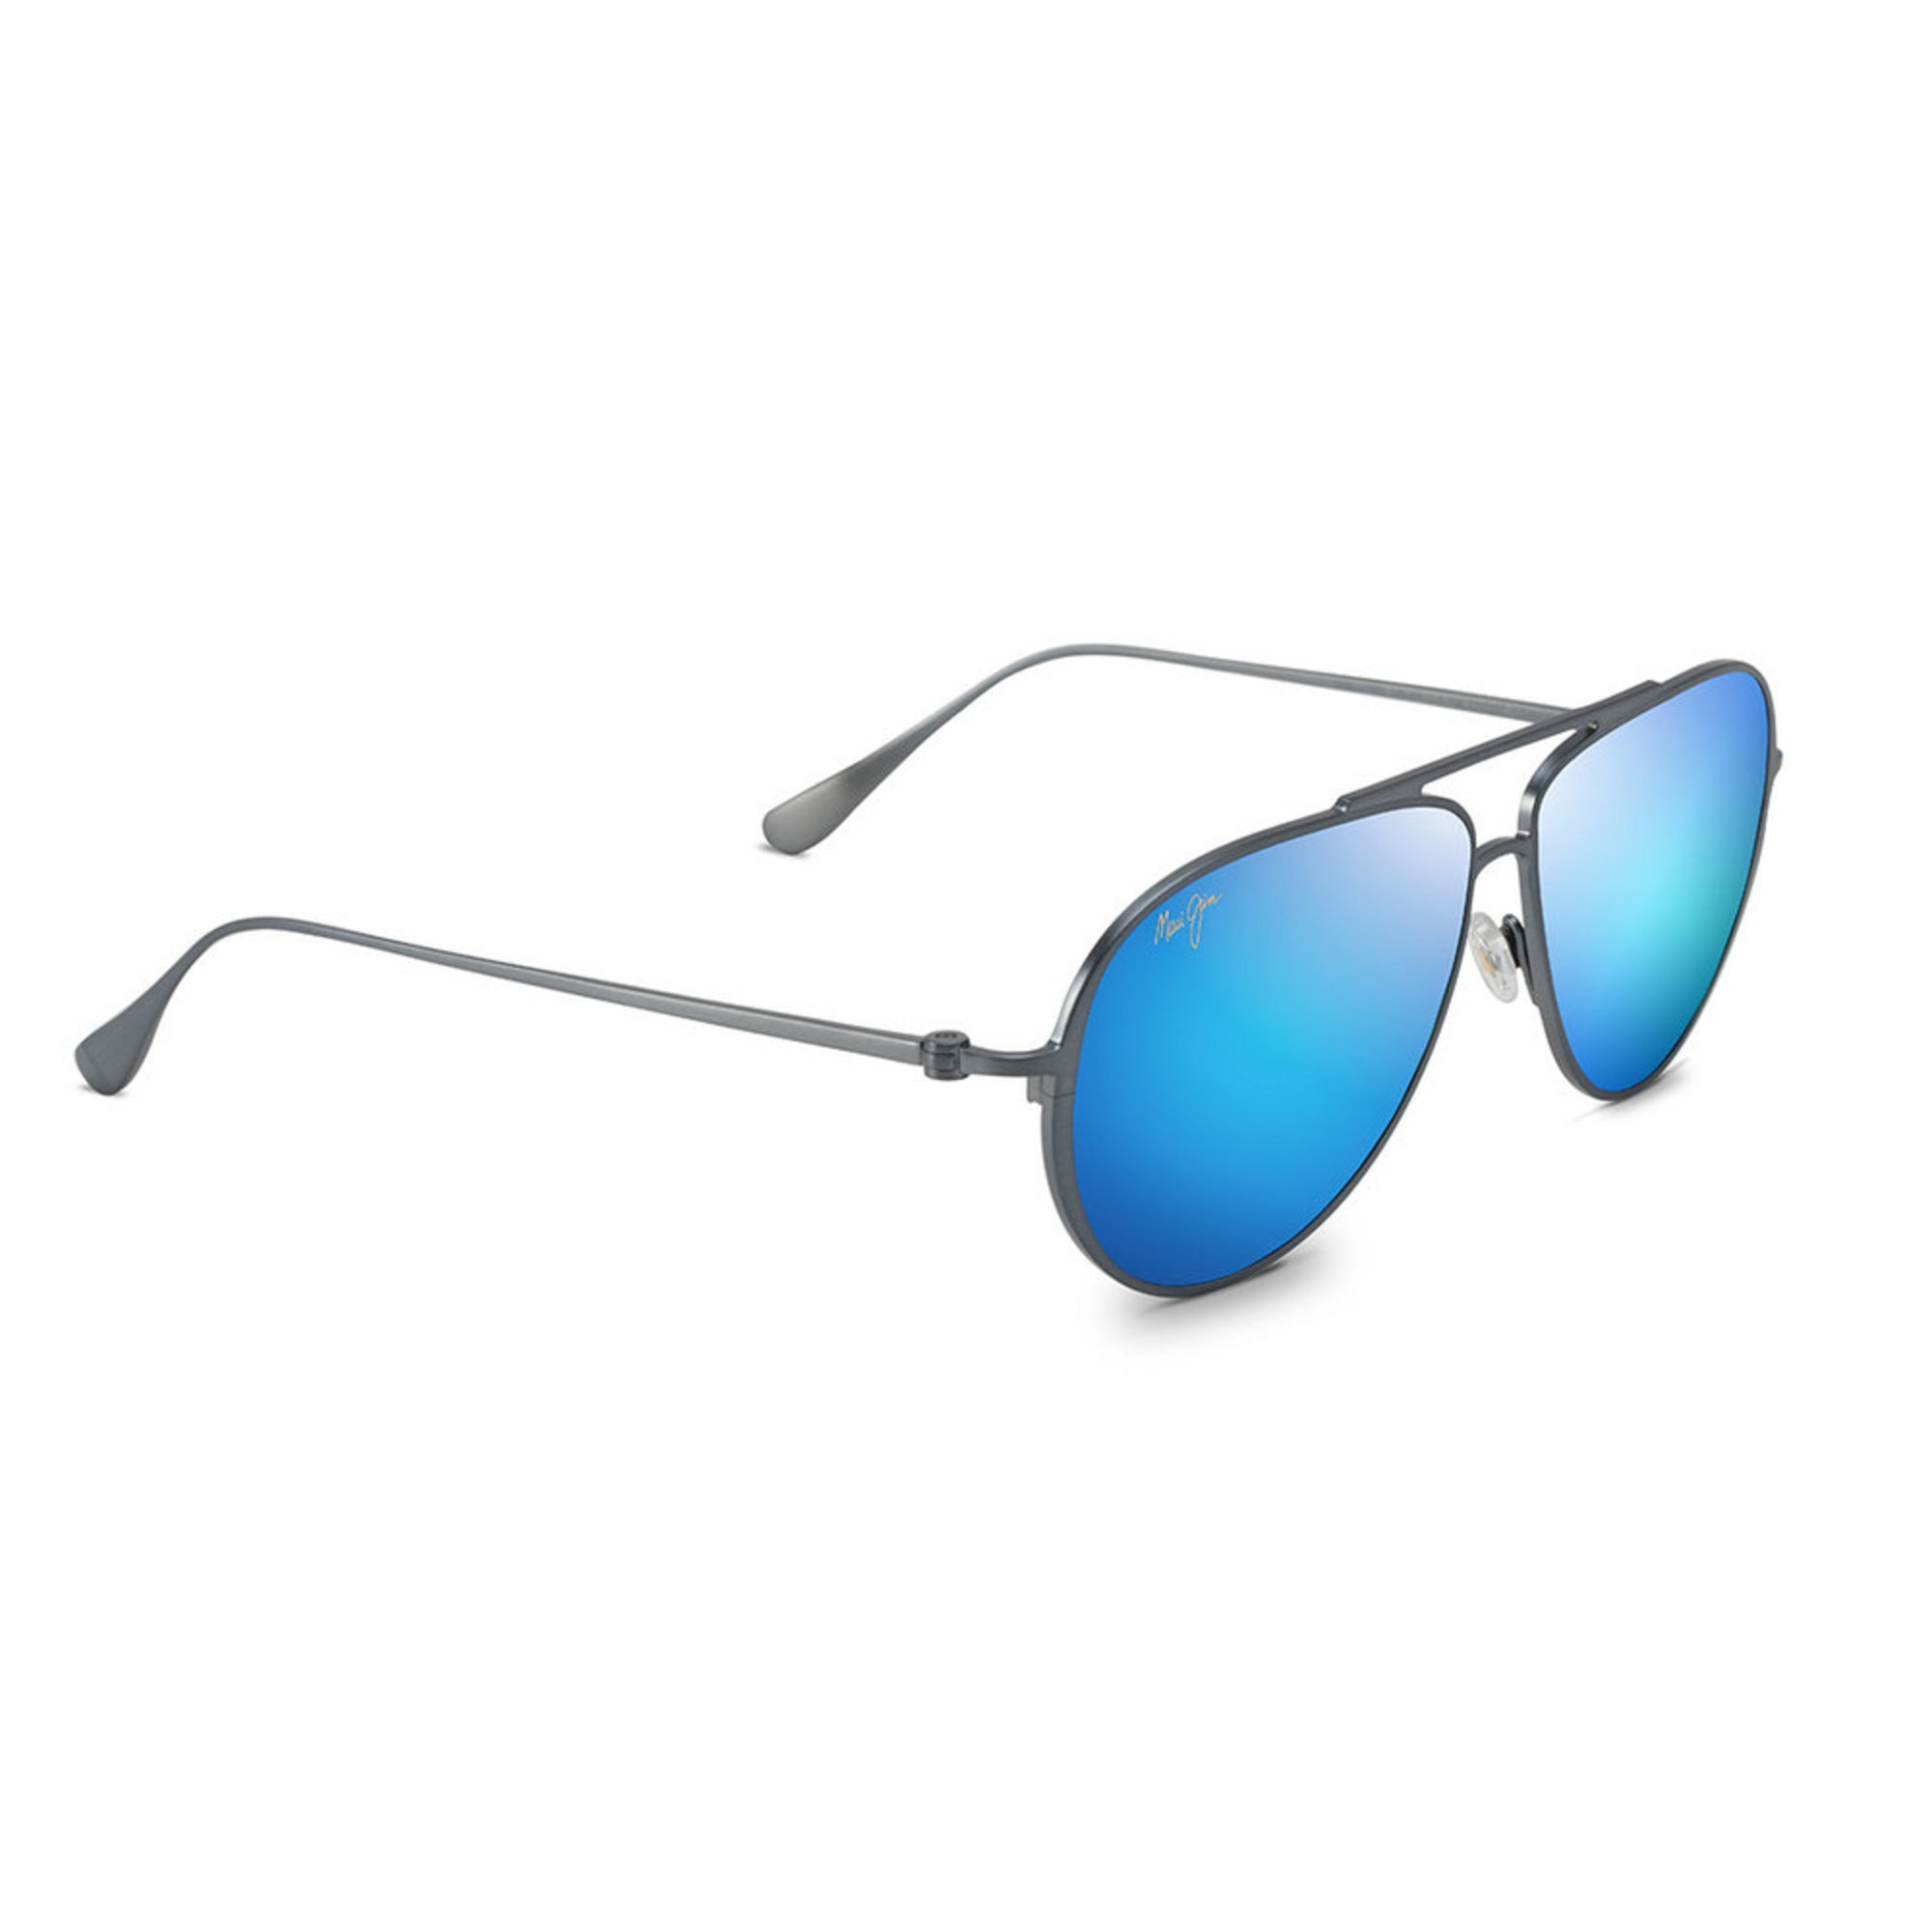 e574e0a5fa52 Maui Jim Unisex Shallows Dove Grey Aviator Sunglasses | Unisex ...